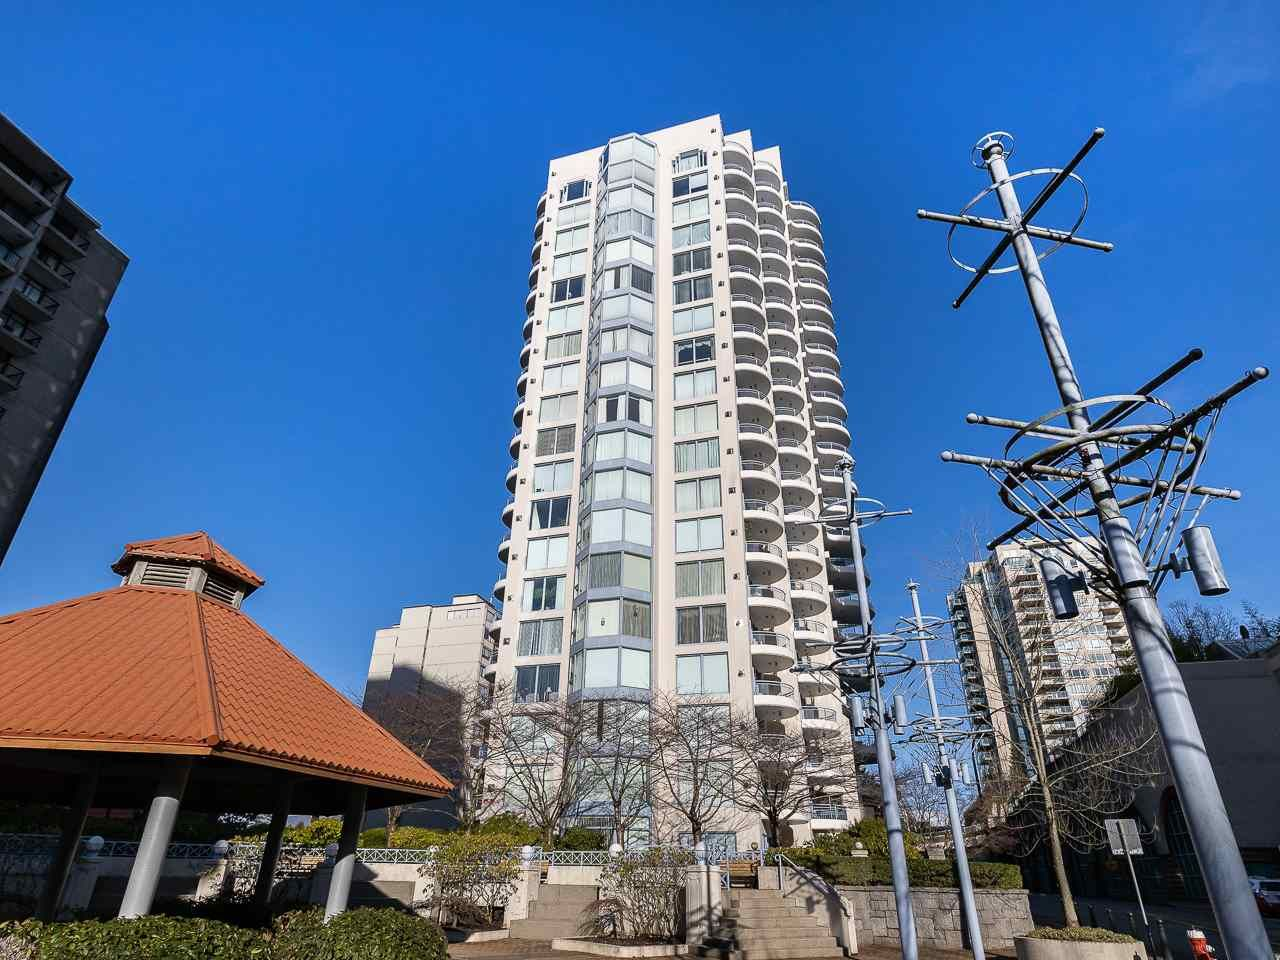 """Main Photo: 804 719 PRINCESS Street in New Westminster: Uptown NW Condo for sale in """"STIRLING PLACE"""" : MLS®# R2432360"""